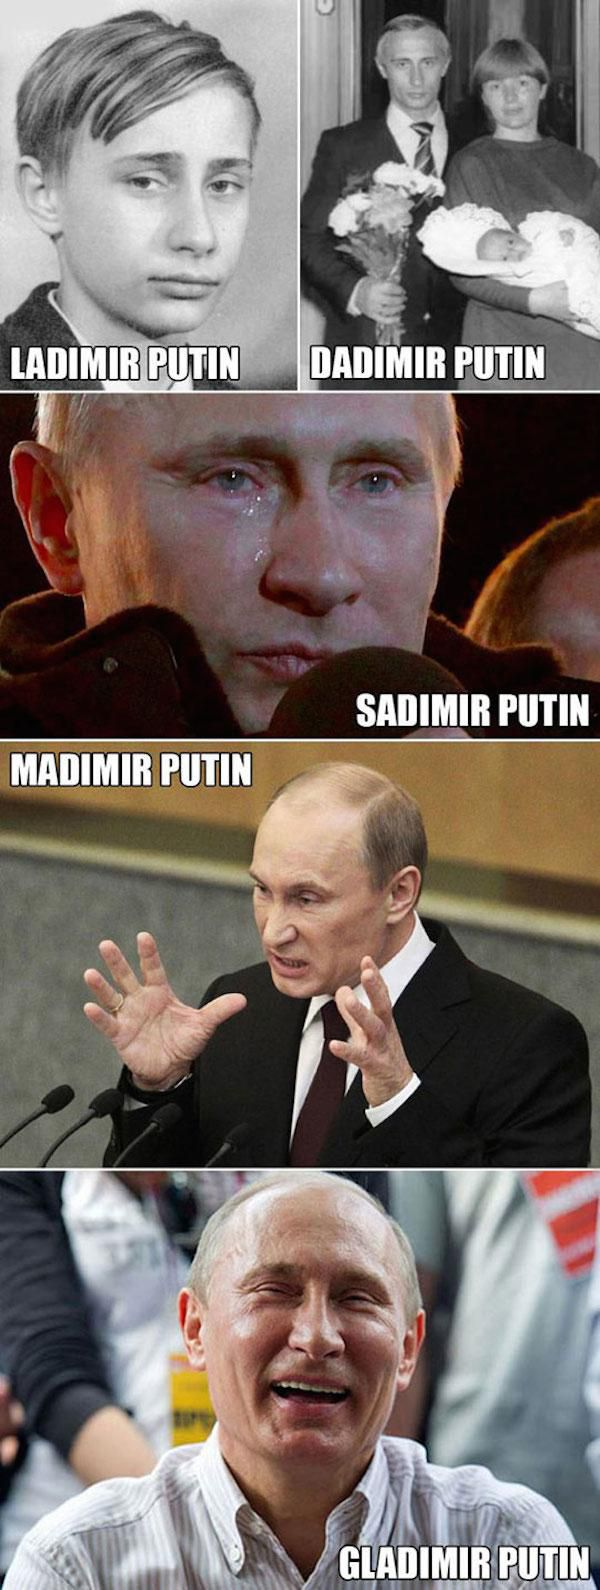 Russia just made it illegal to publish meme's that portray a public figure in any way that is unlike them. But we can still publish them all we want...